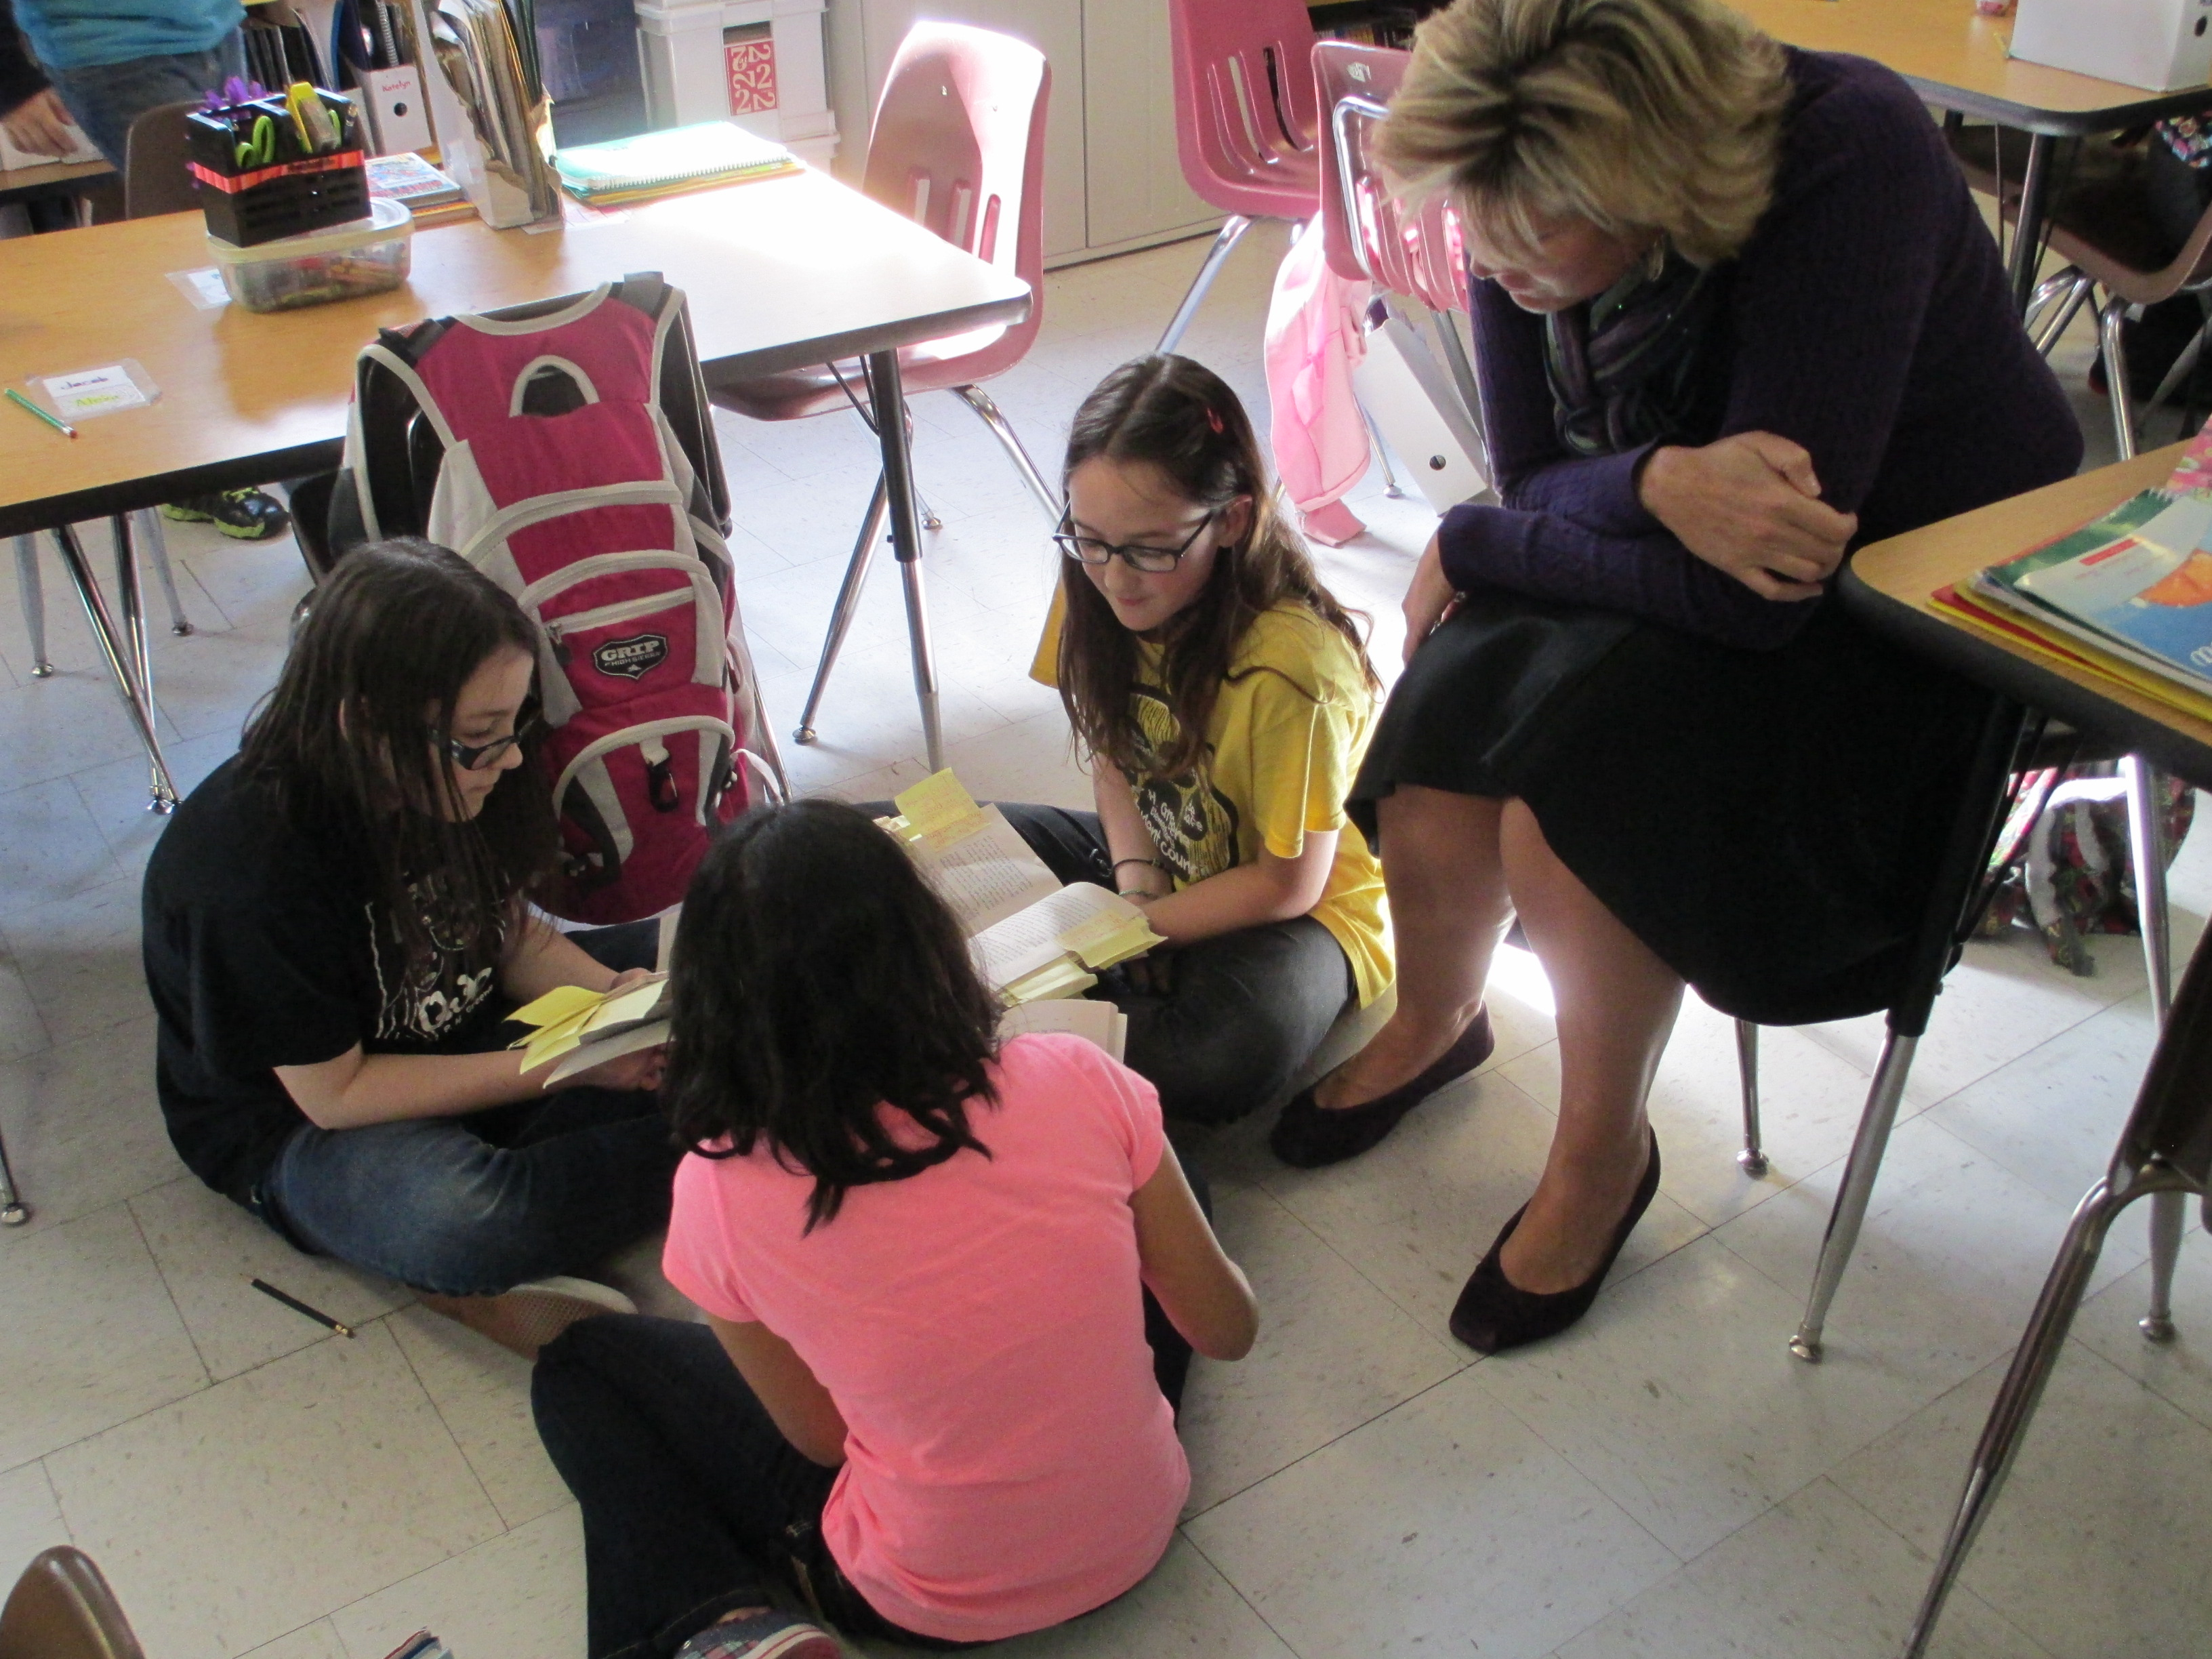 Students working in book club with teacher